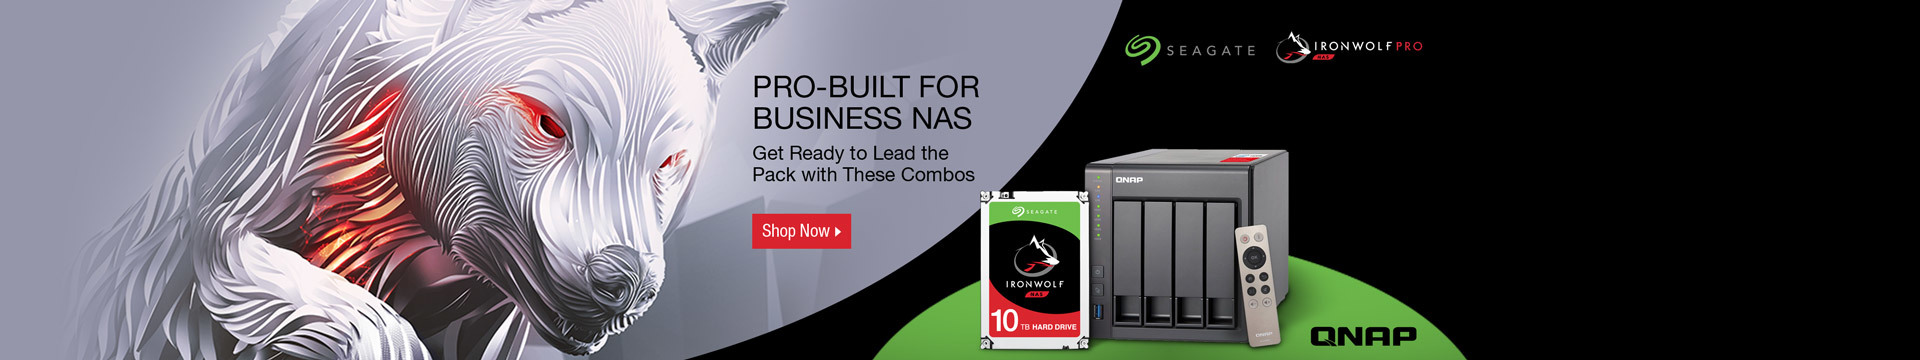 PRO-BUILT FOR BUSINESS NAS